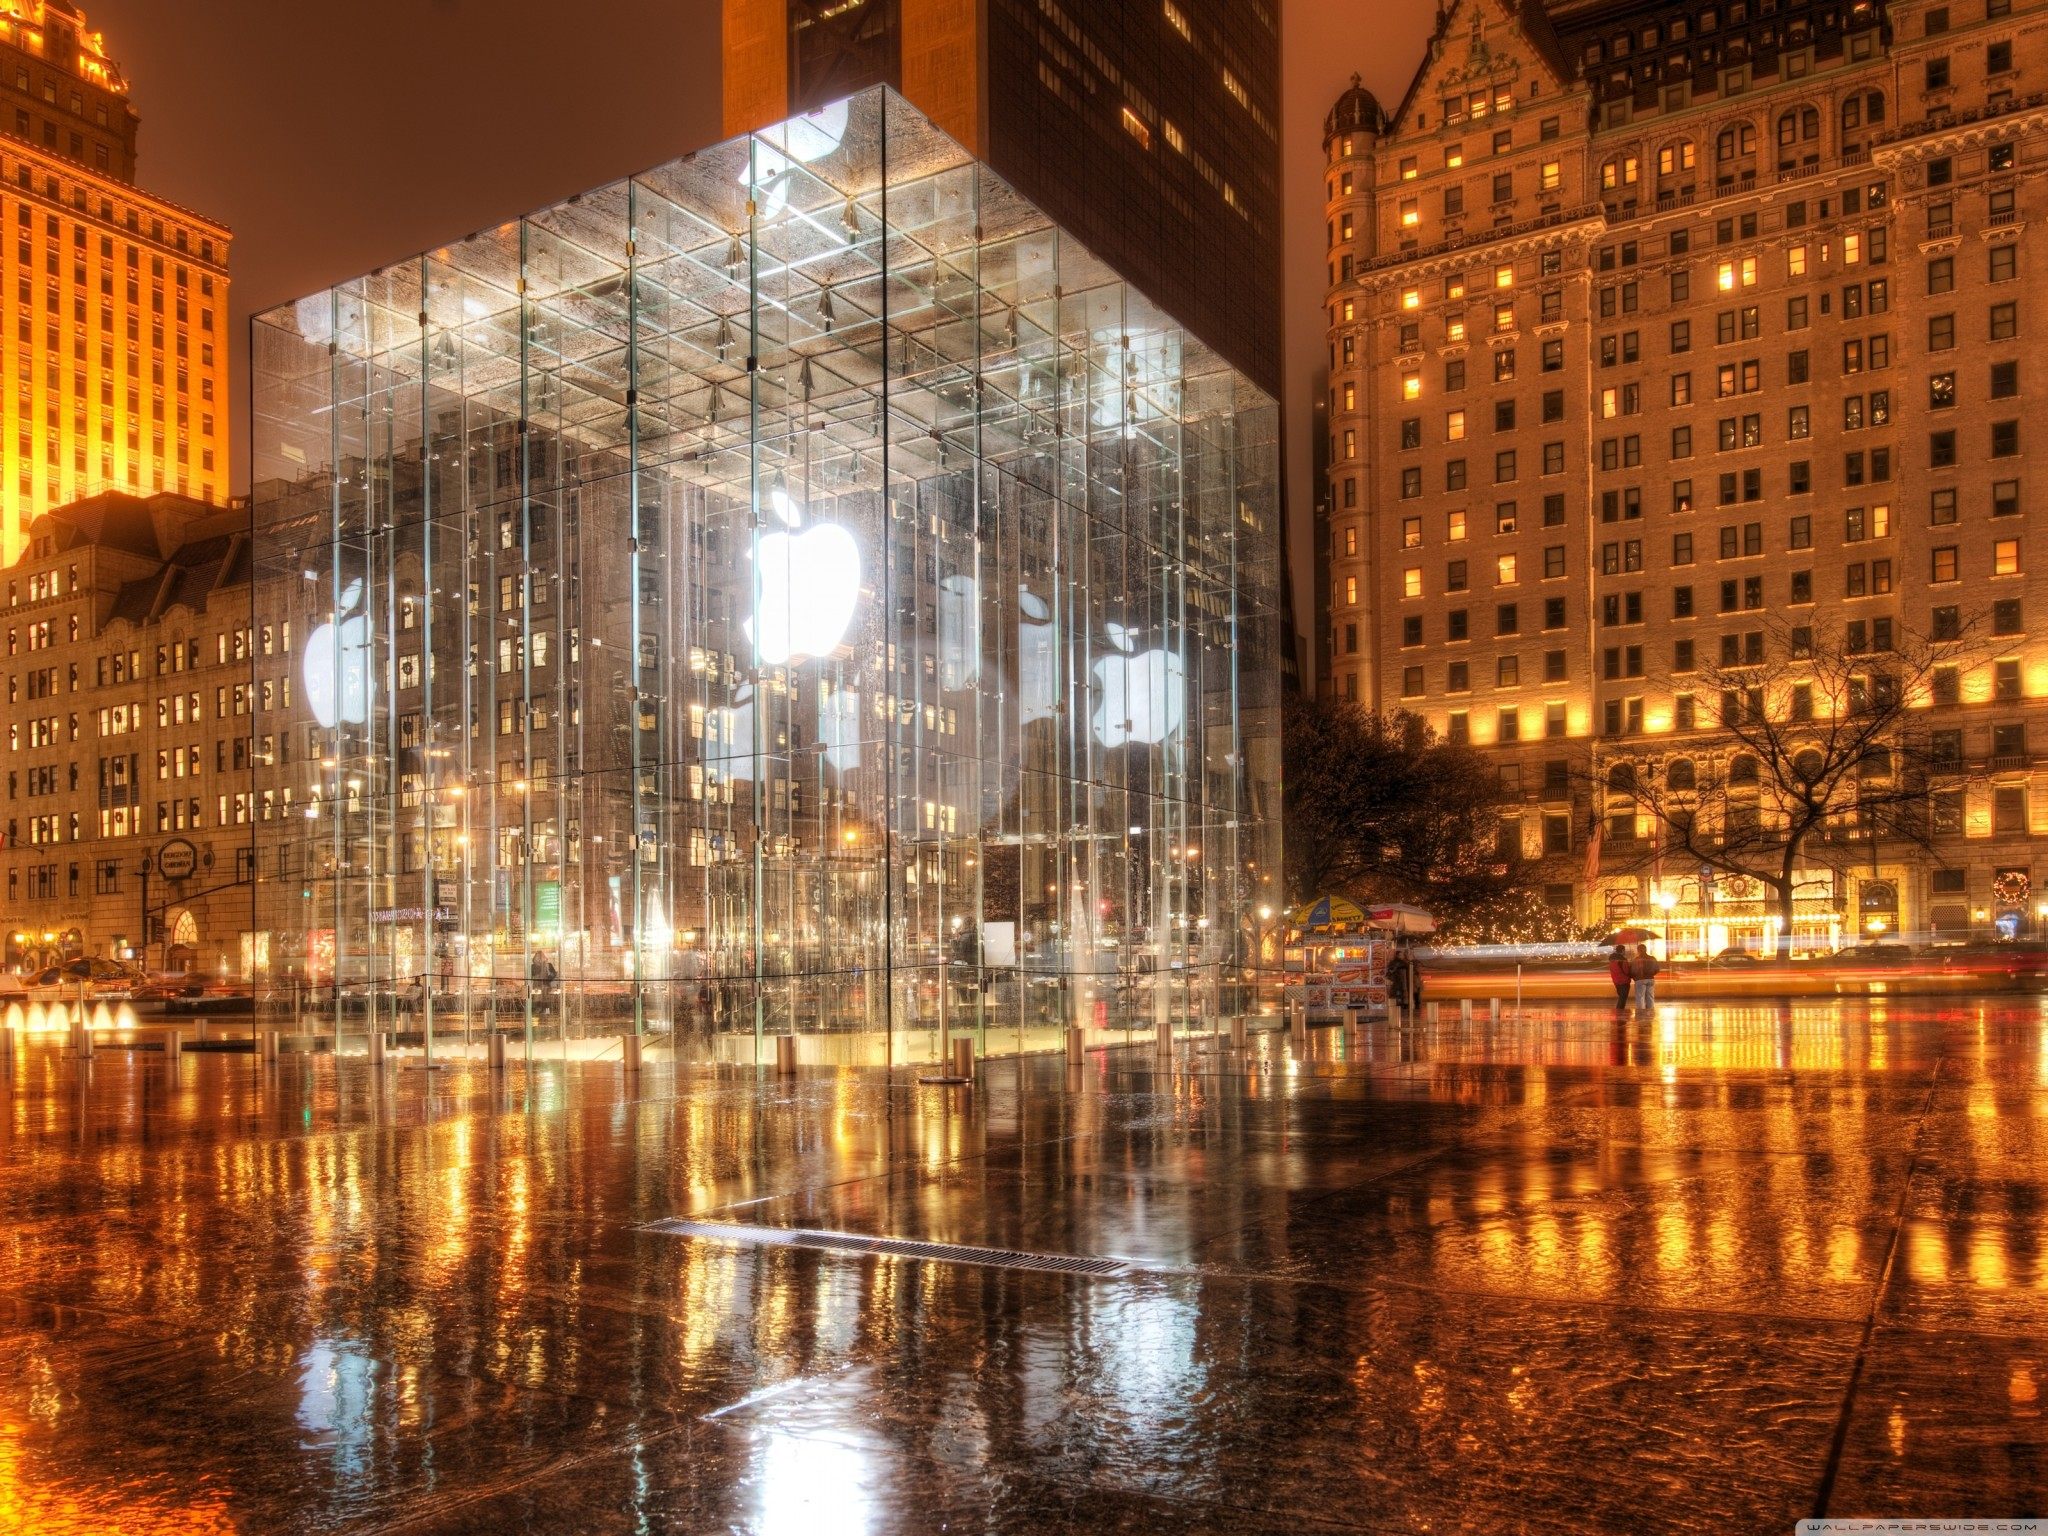 apple_store_new_york-wallpaper-3200x2400